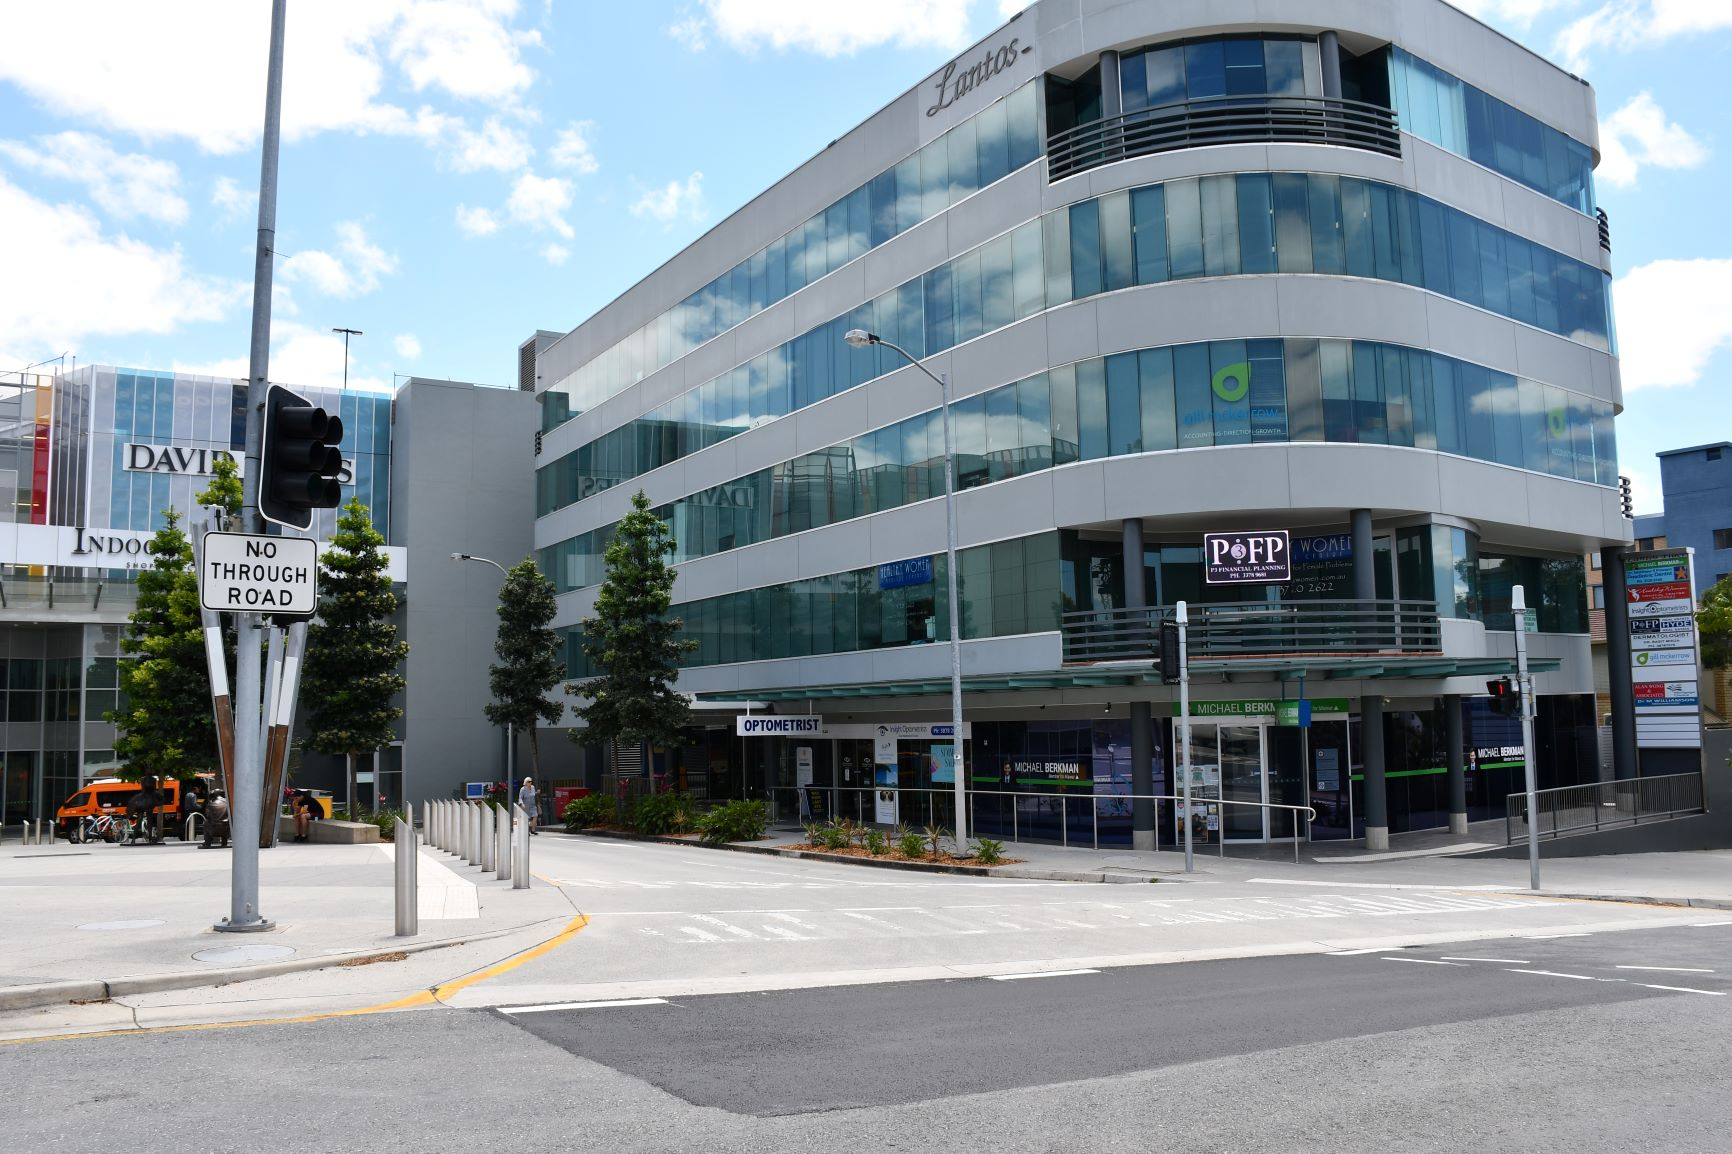 LANTOS PLACE - Indooroopilly